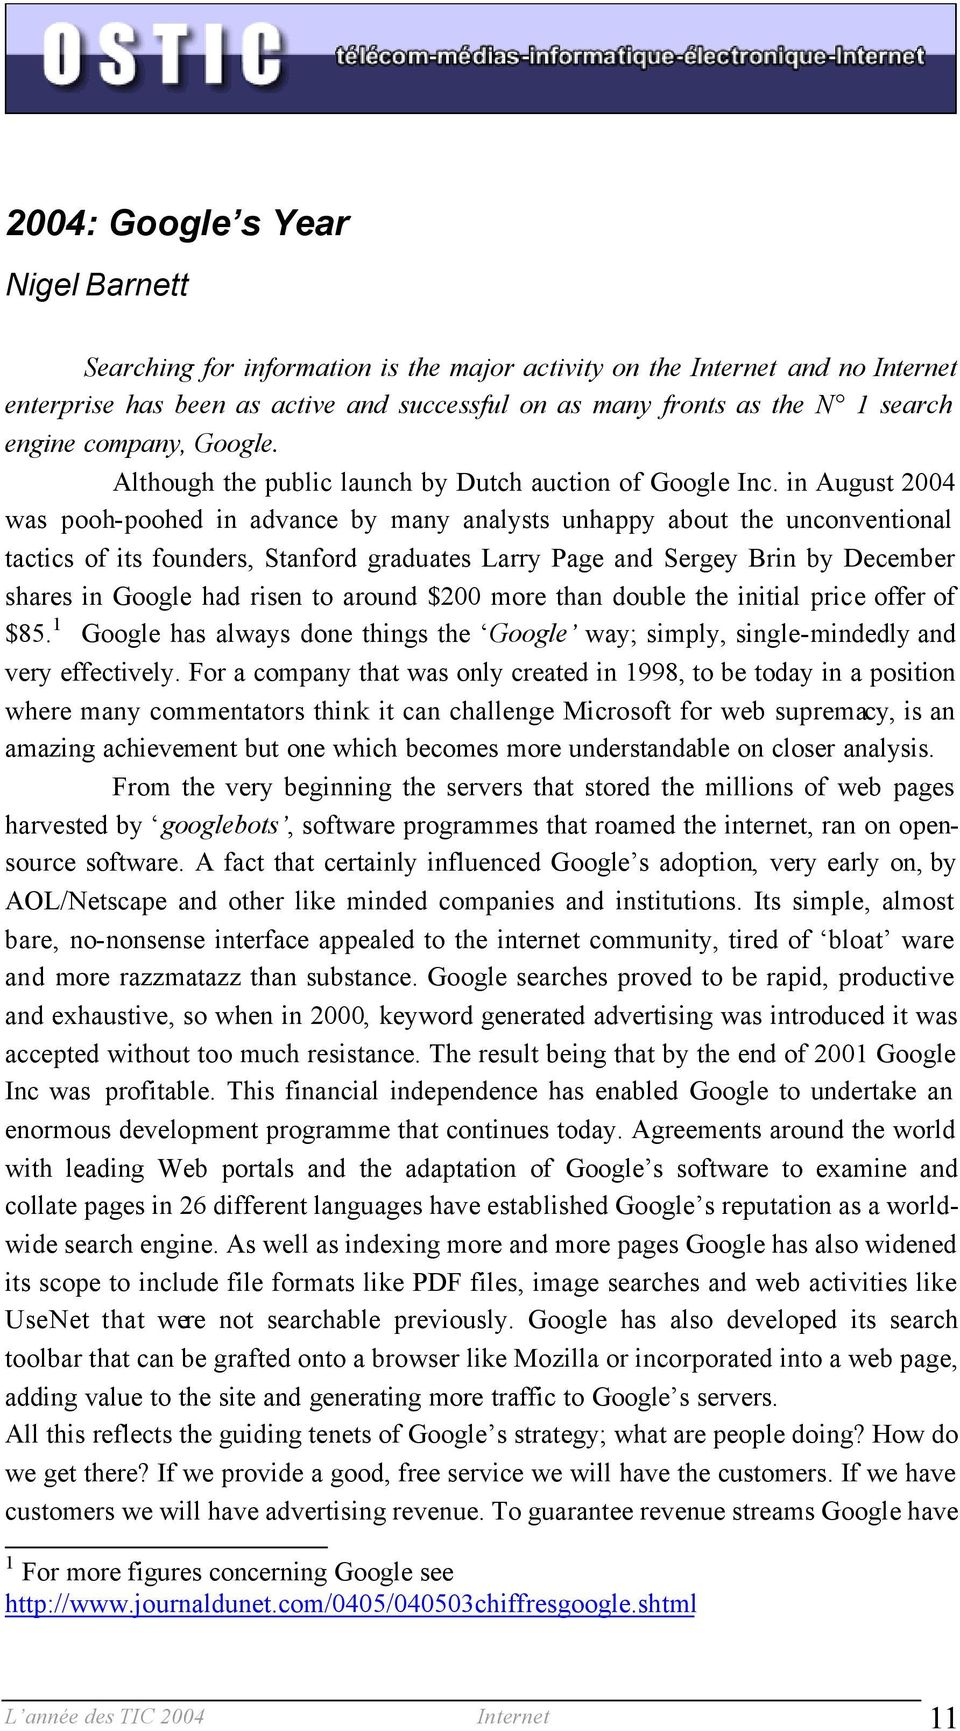 in August 2004 was pooh-poohed in advance by many analysts unhappy about the unconventional tactics of its founders, Stanford graduates Larry Page and Sergey Brin by December shares in Google had